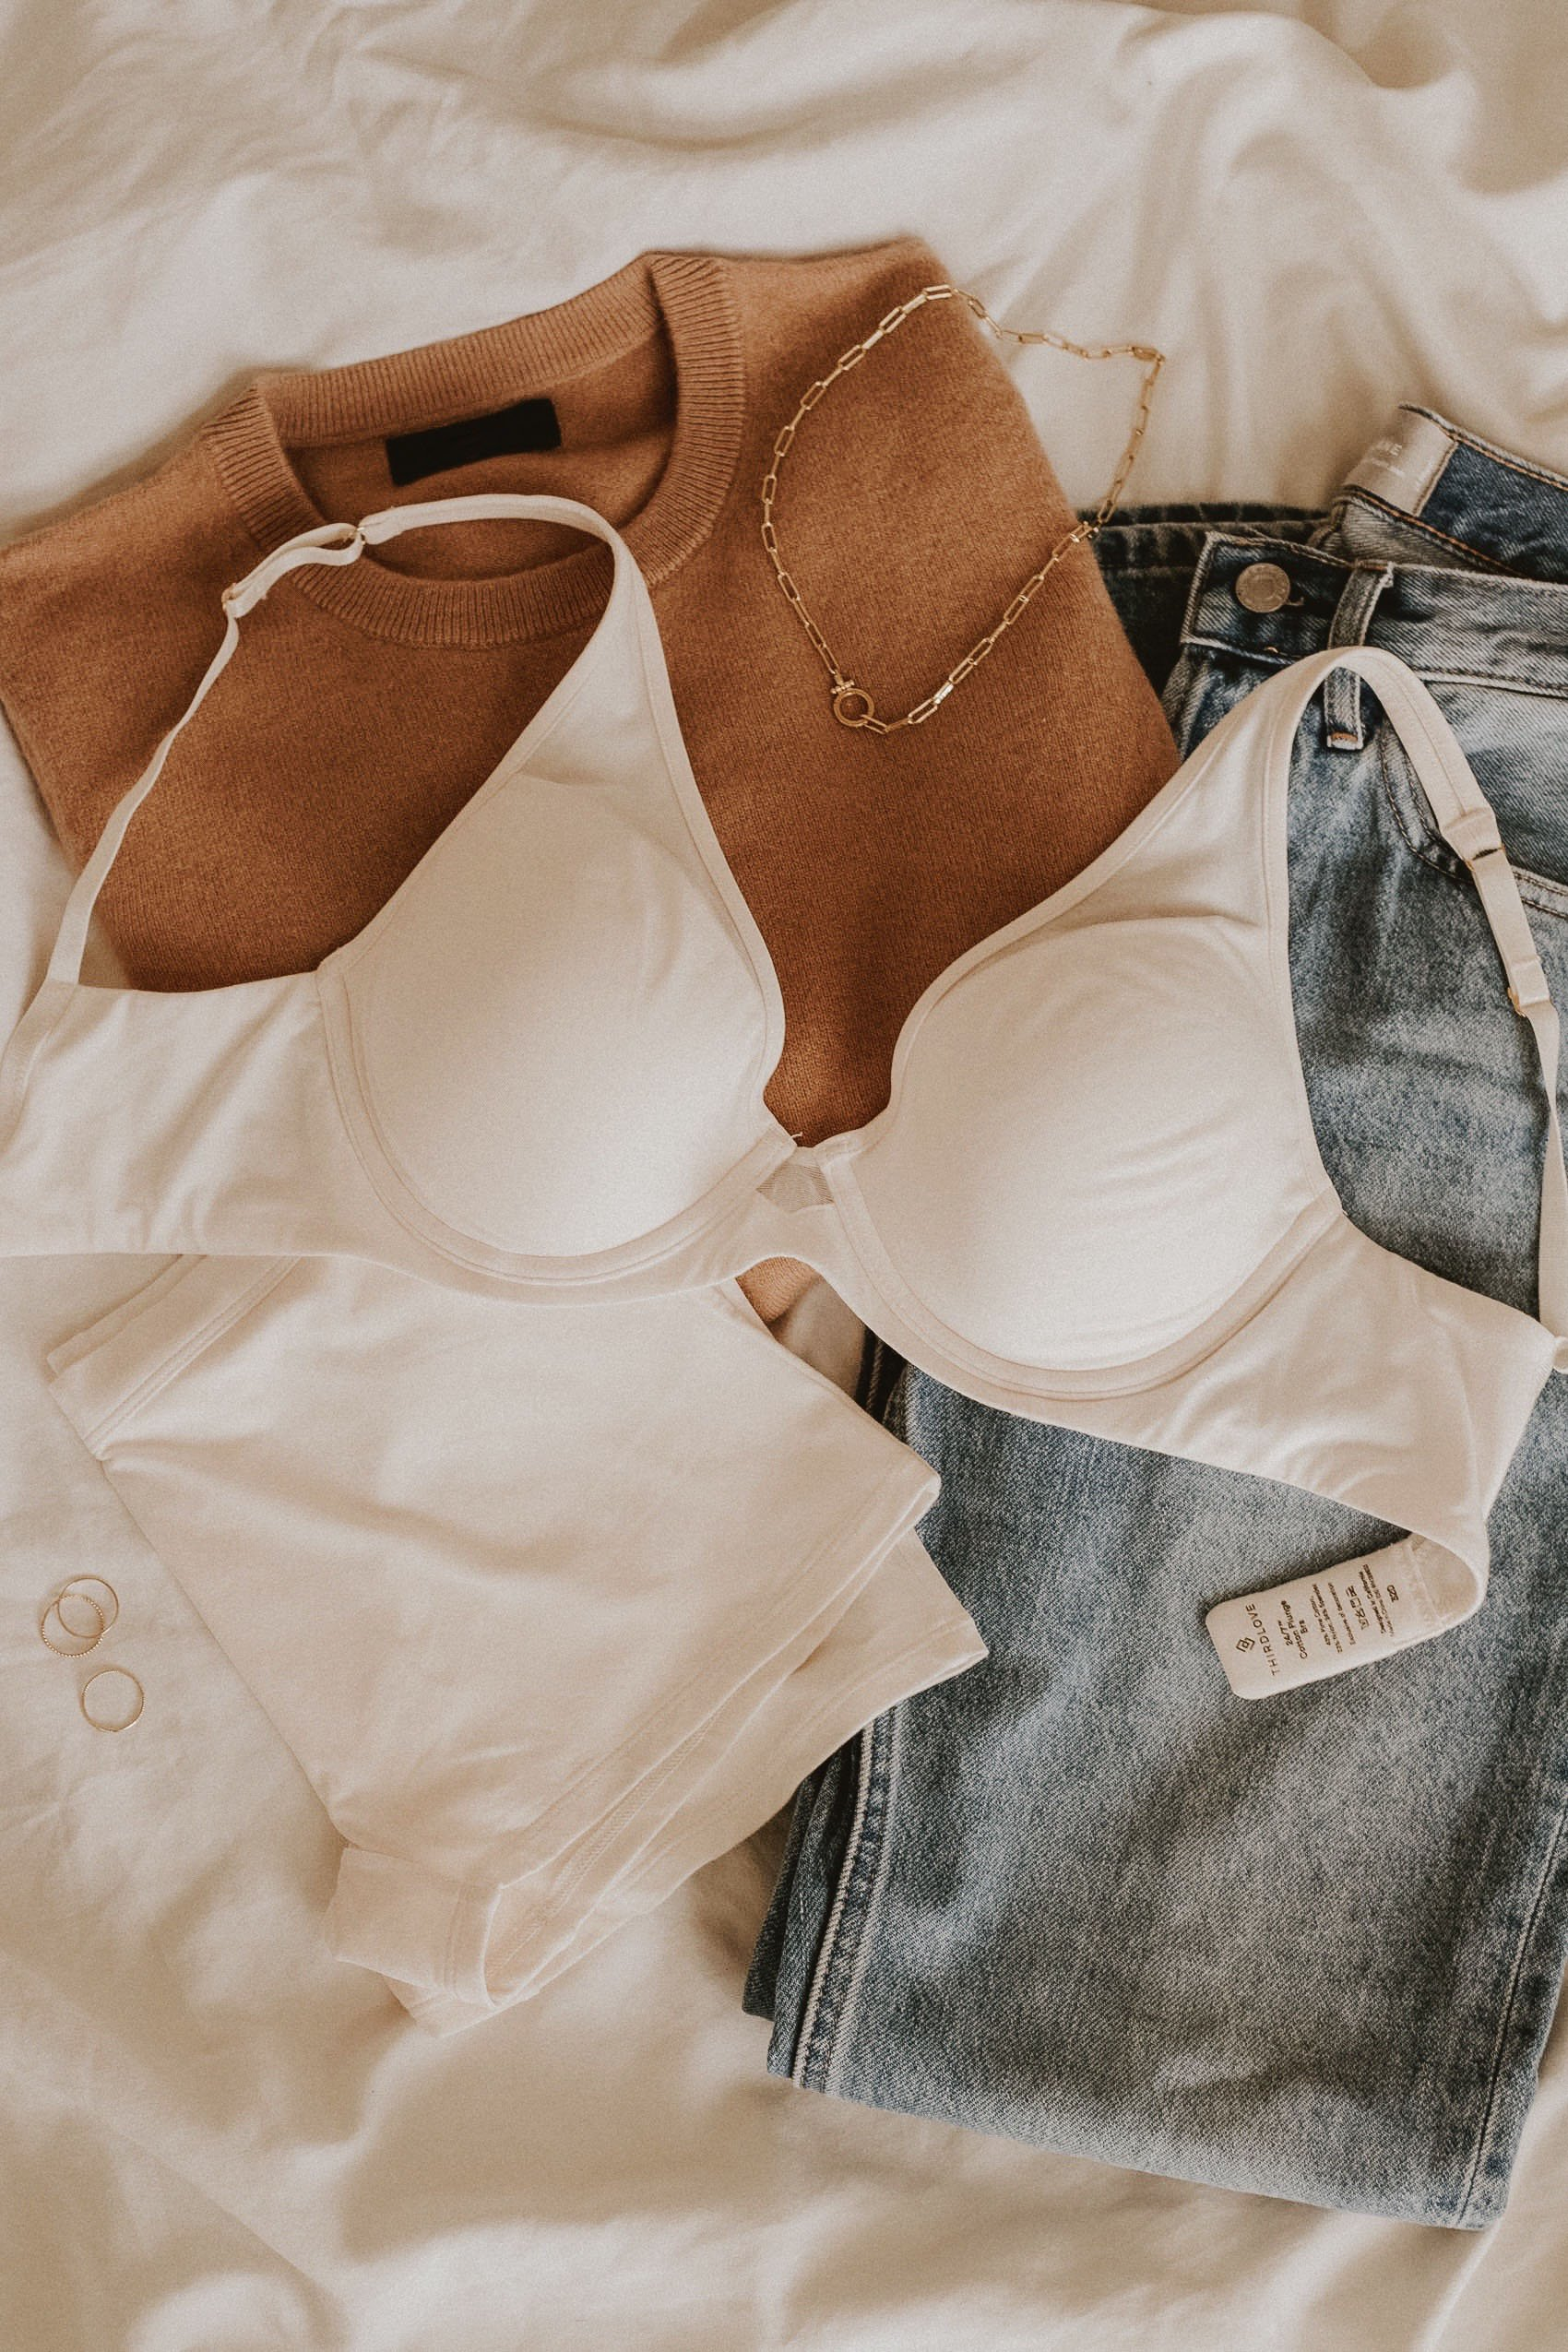 Self Care Gifts for Women, ThirdLove Bra